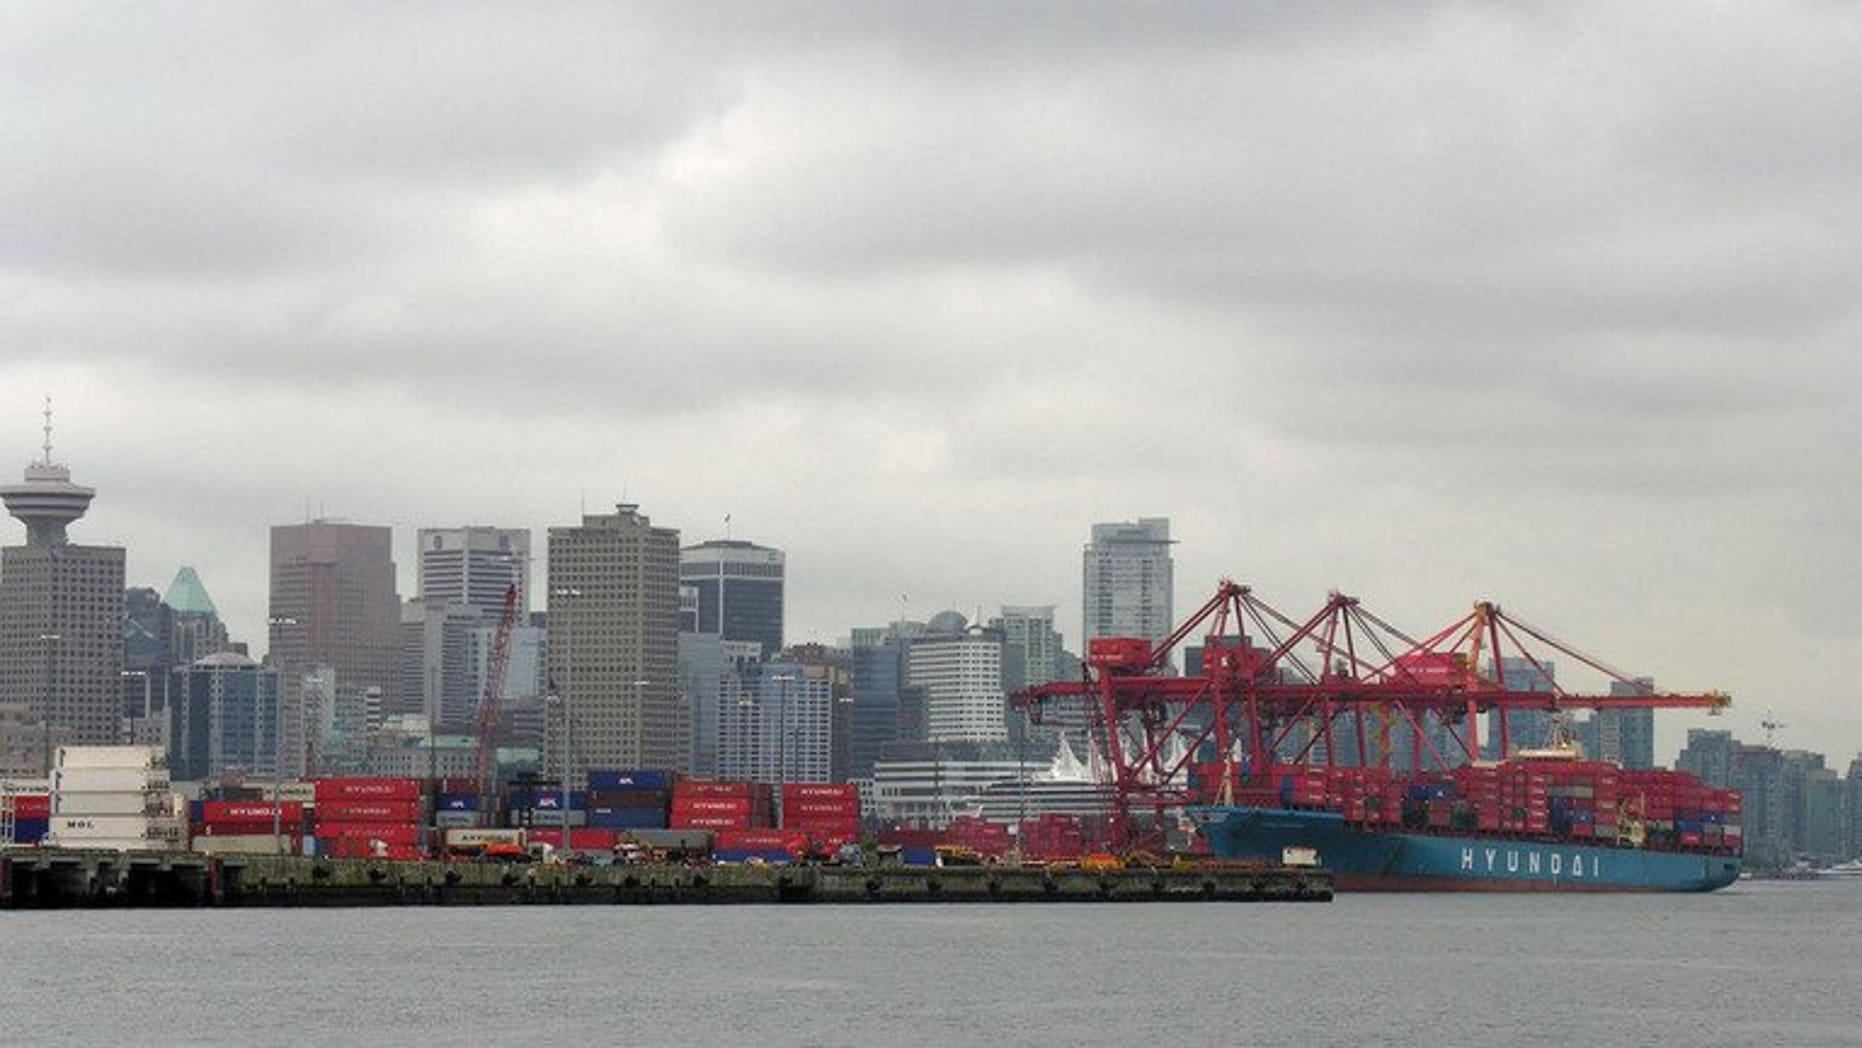 A container ship unloads in 2005 at the P&O Central Terminal in the Port of Vancouver. Canada's trade deficit doubled in July as imports increased and exports declined, the government statistical agency said Wednesday.